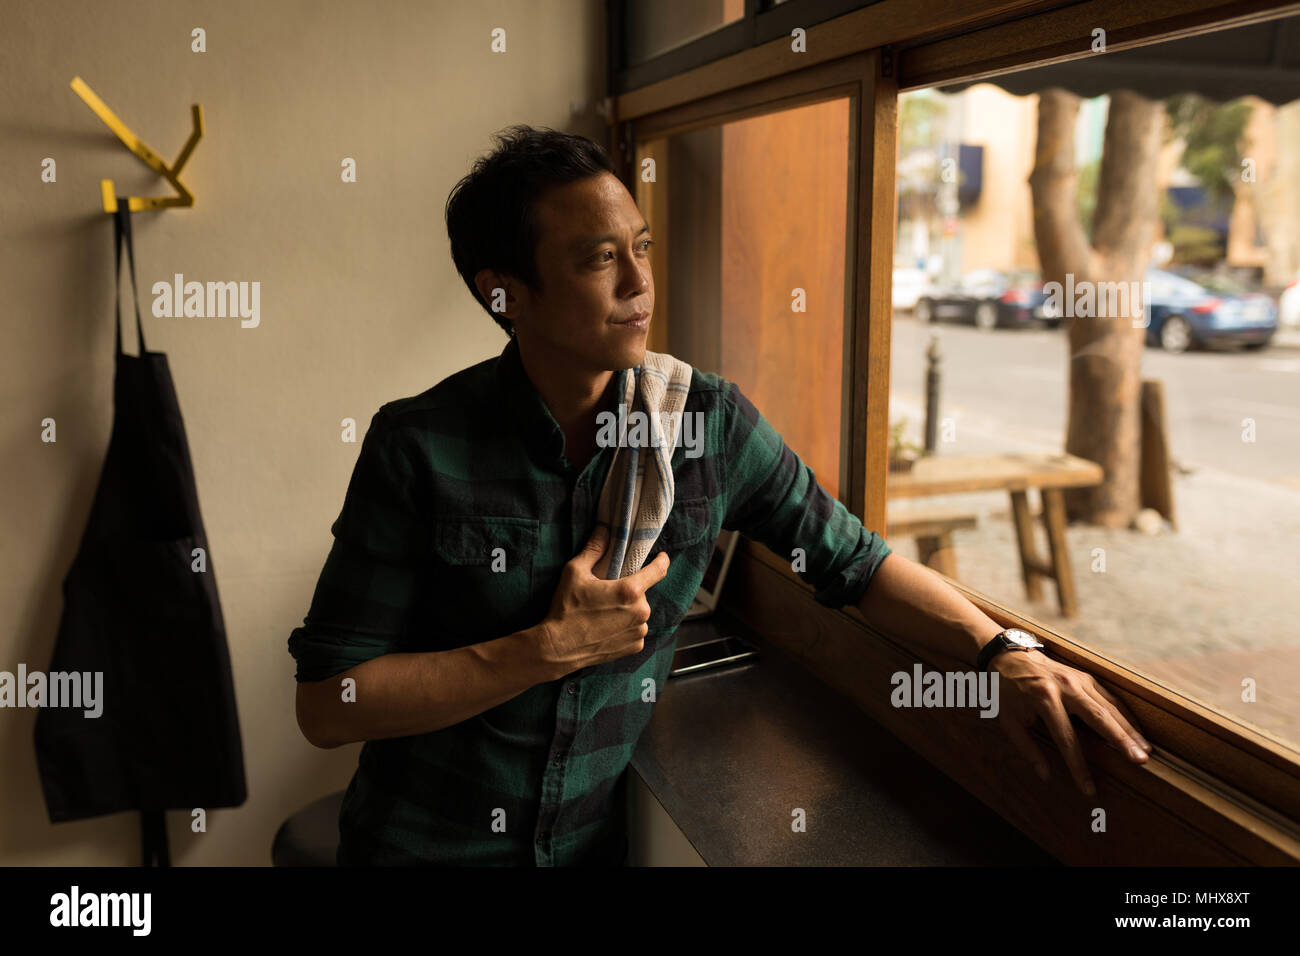 Thoughtful man looking through window Stock Photo